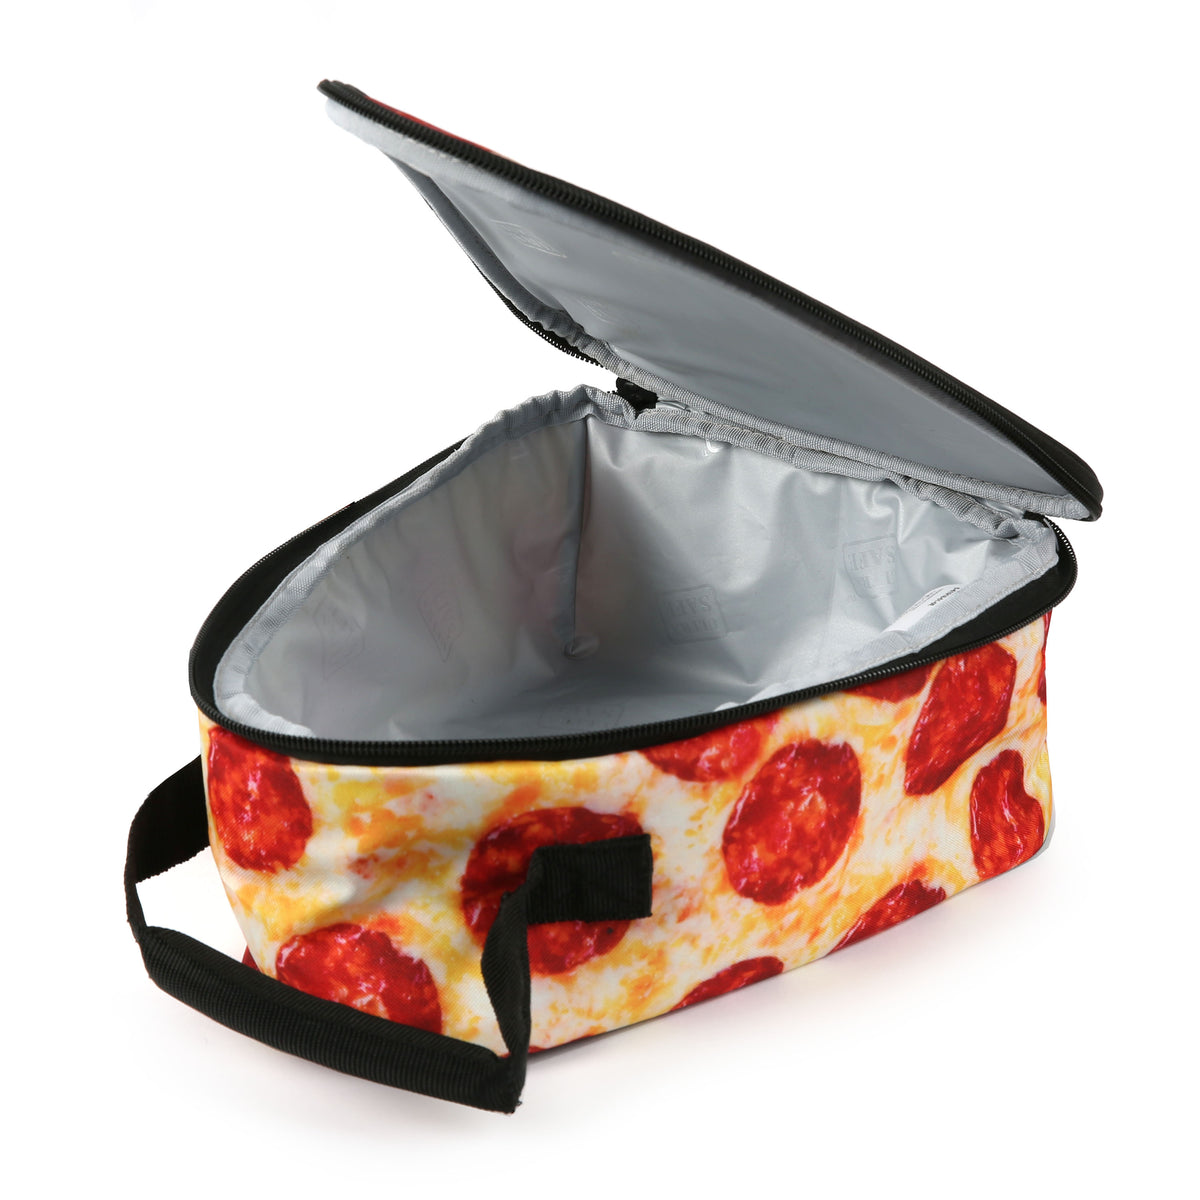 Arctic Zone® Pizza Lunch Pack - Open, empty